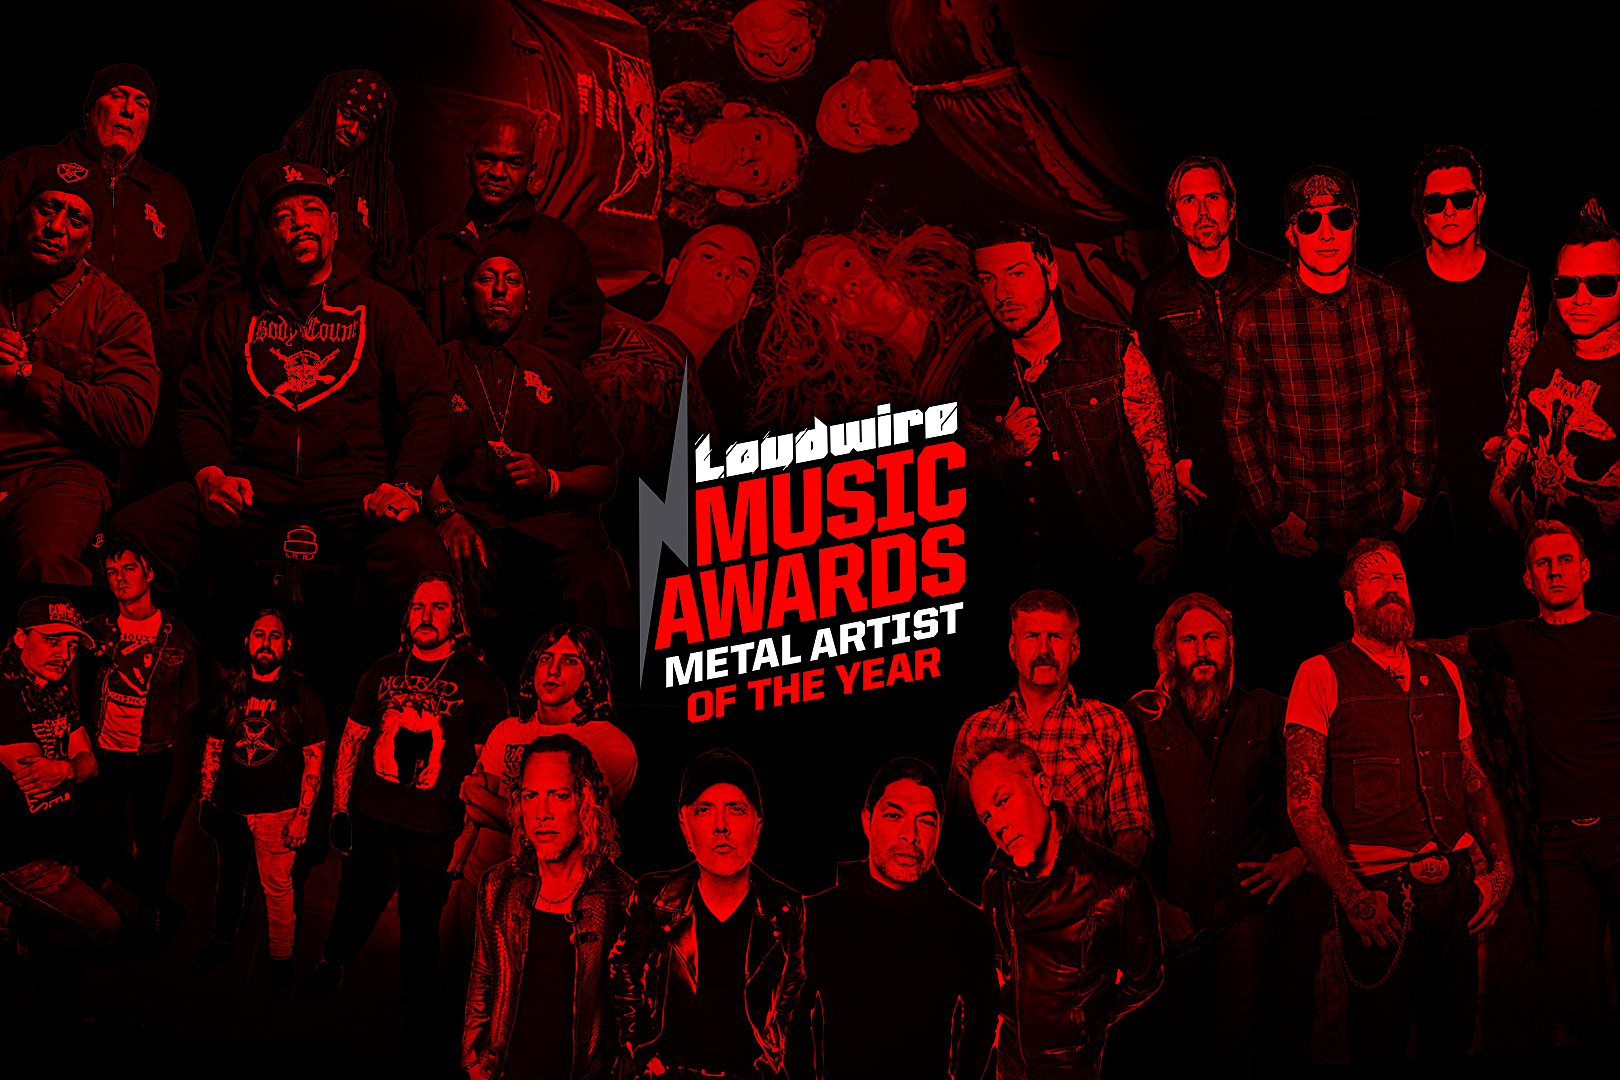 Vote for the Metal Artist of the Year – 2017 Loudwire Music Awards